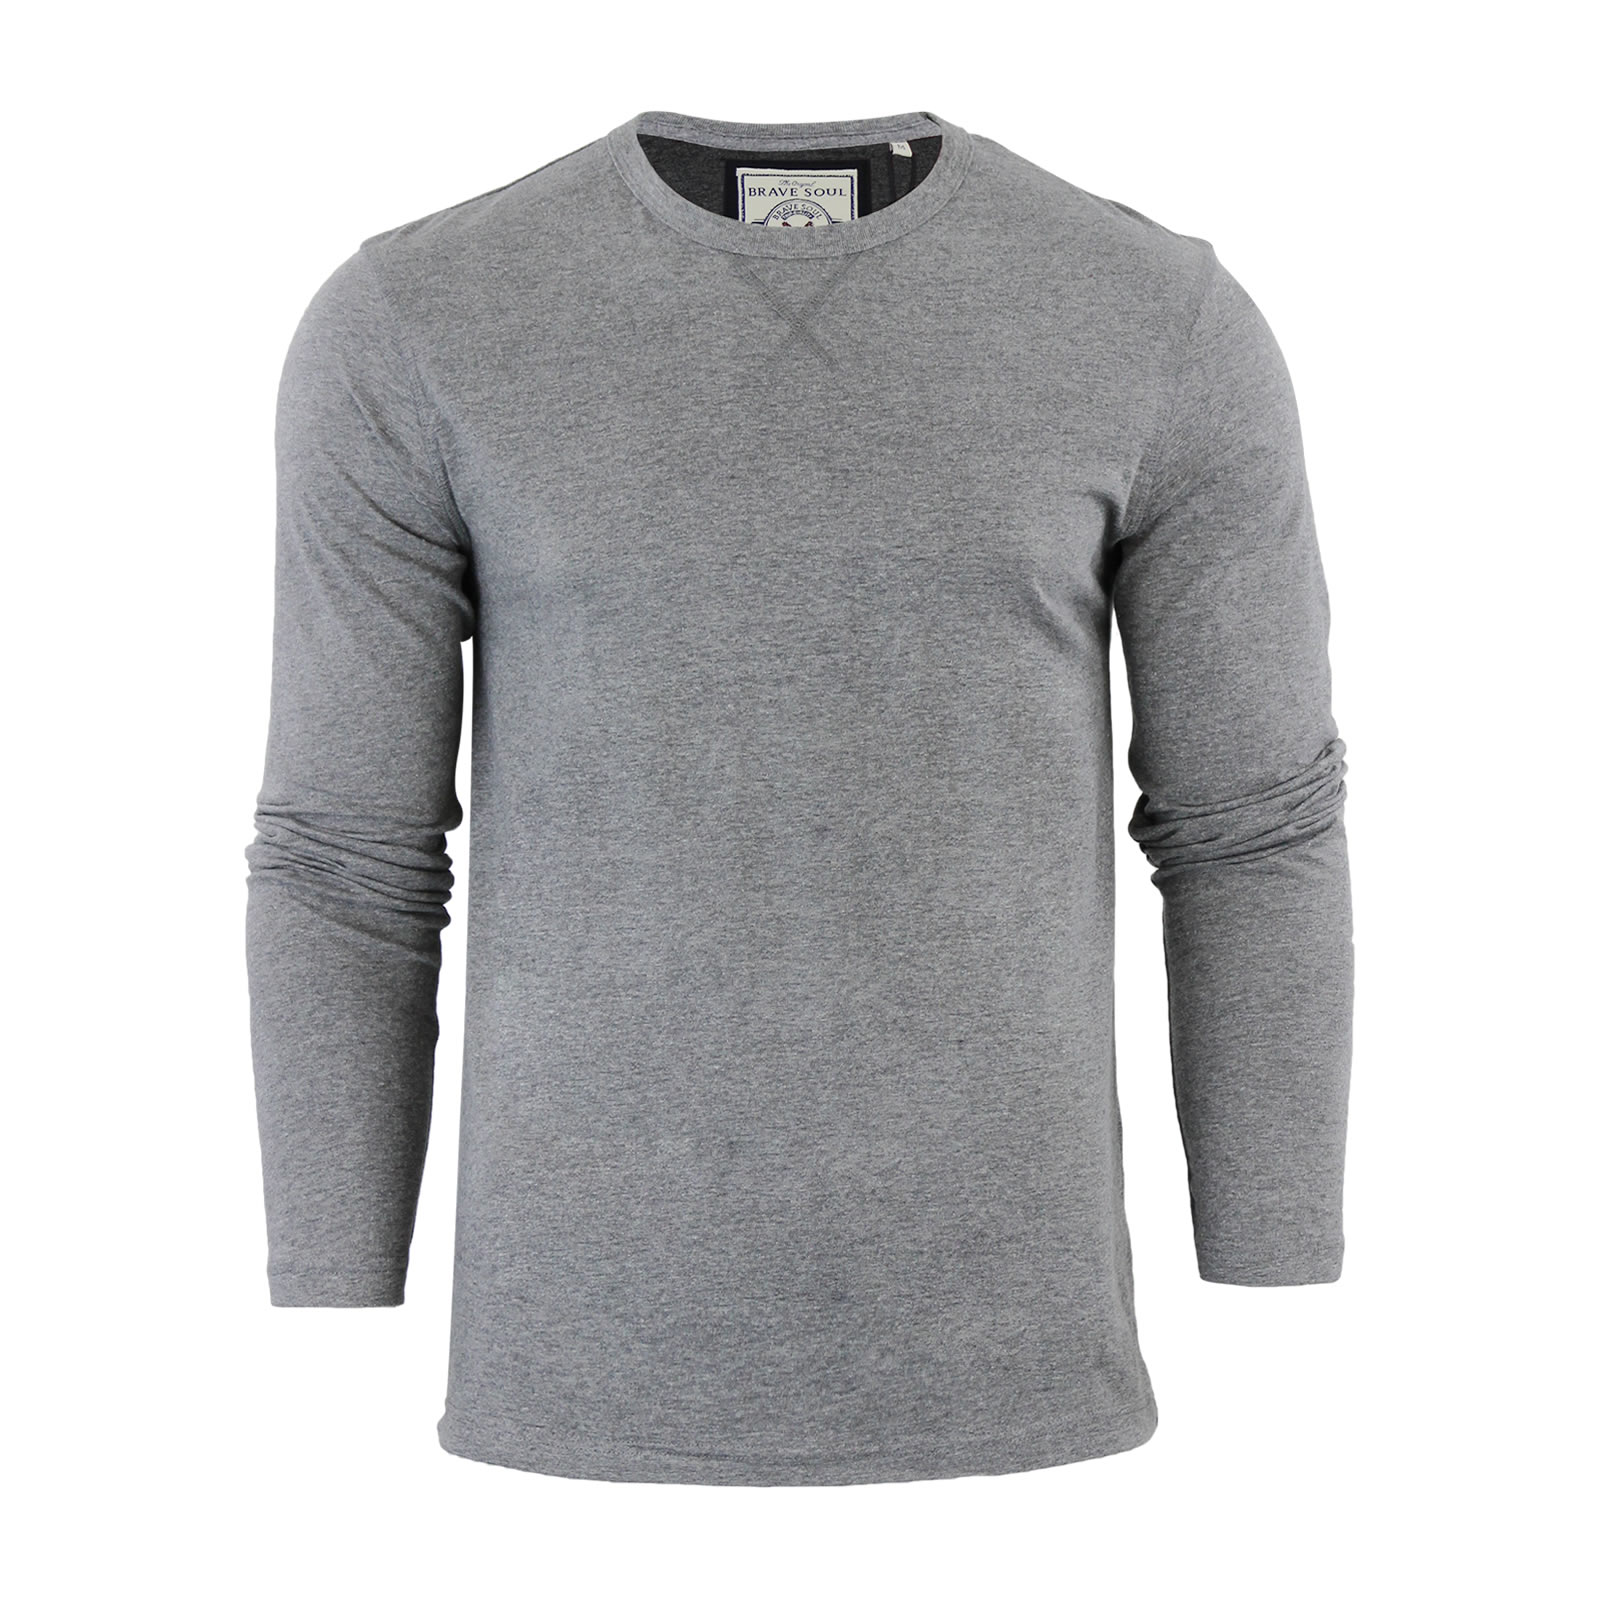 16e76c85 Mens Long Sleeve Top T-shirt Casual Crew Neck Muscle Shirt Gym Brave ...